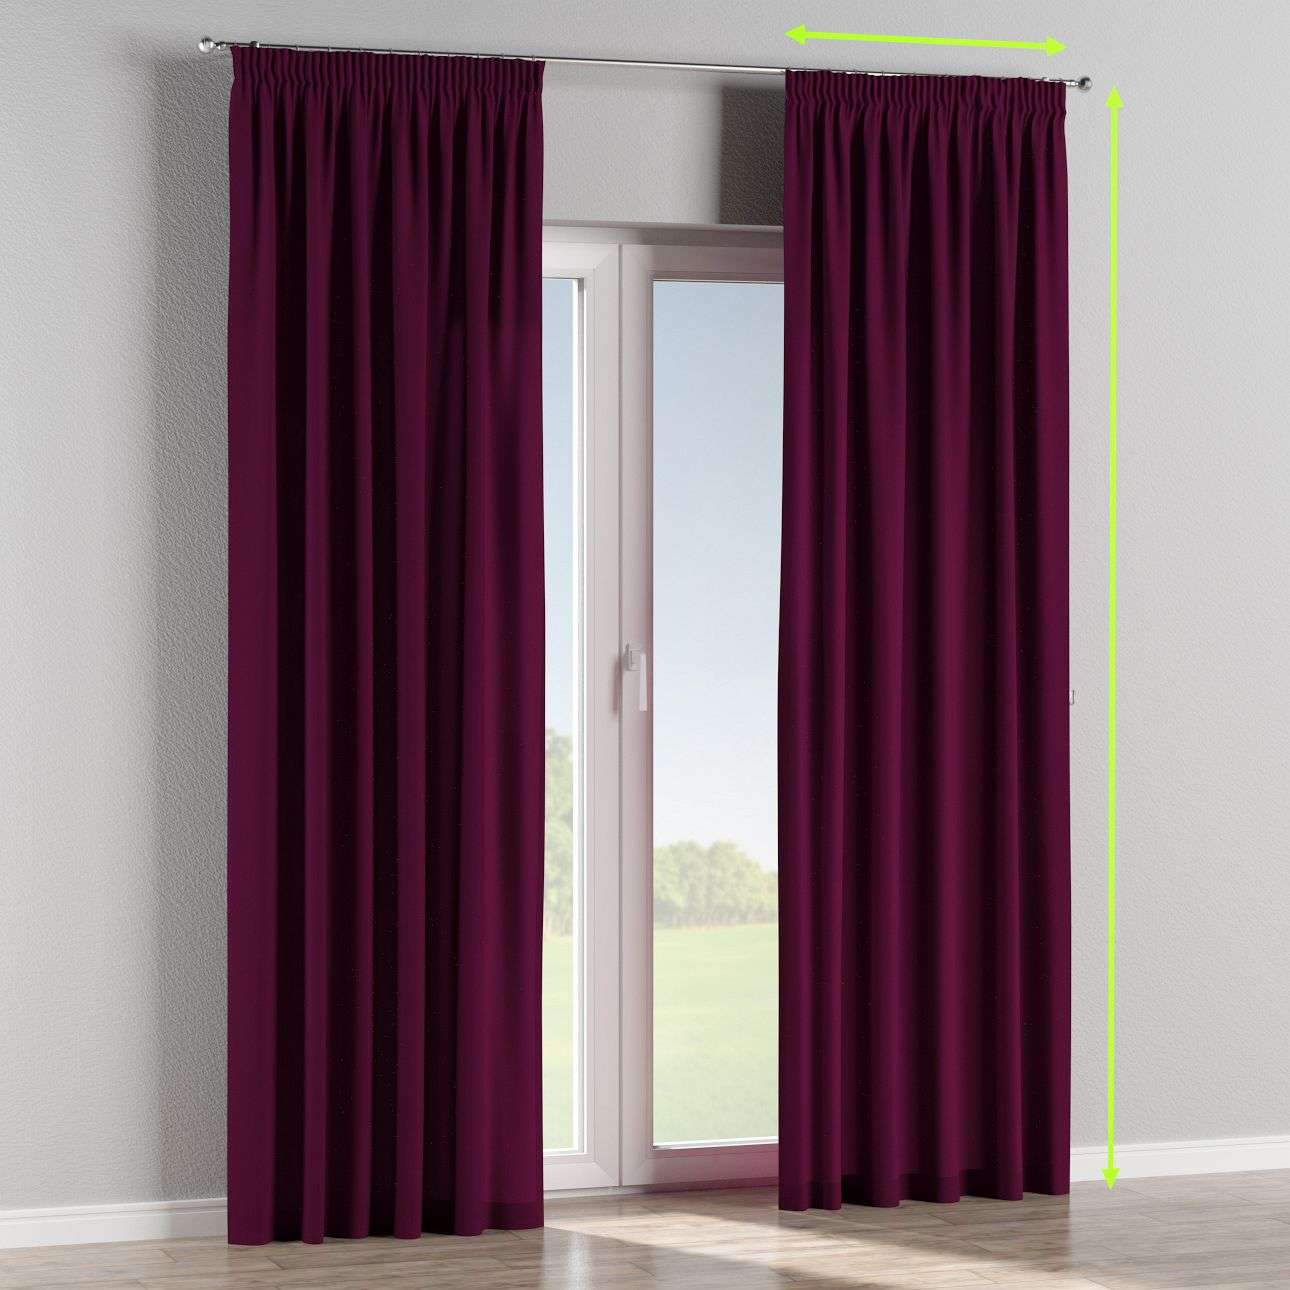 Pencil pleat lined curtains in collection Chenille, fabric: 702-12